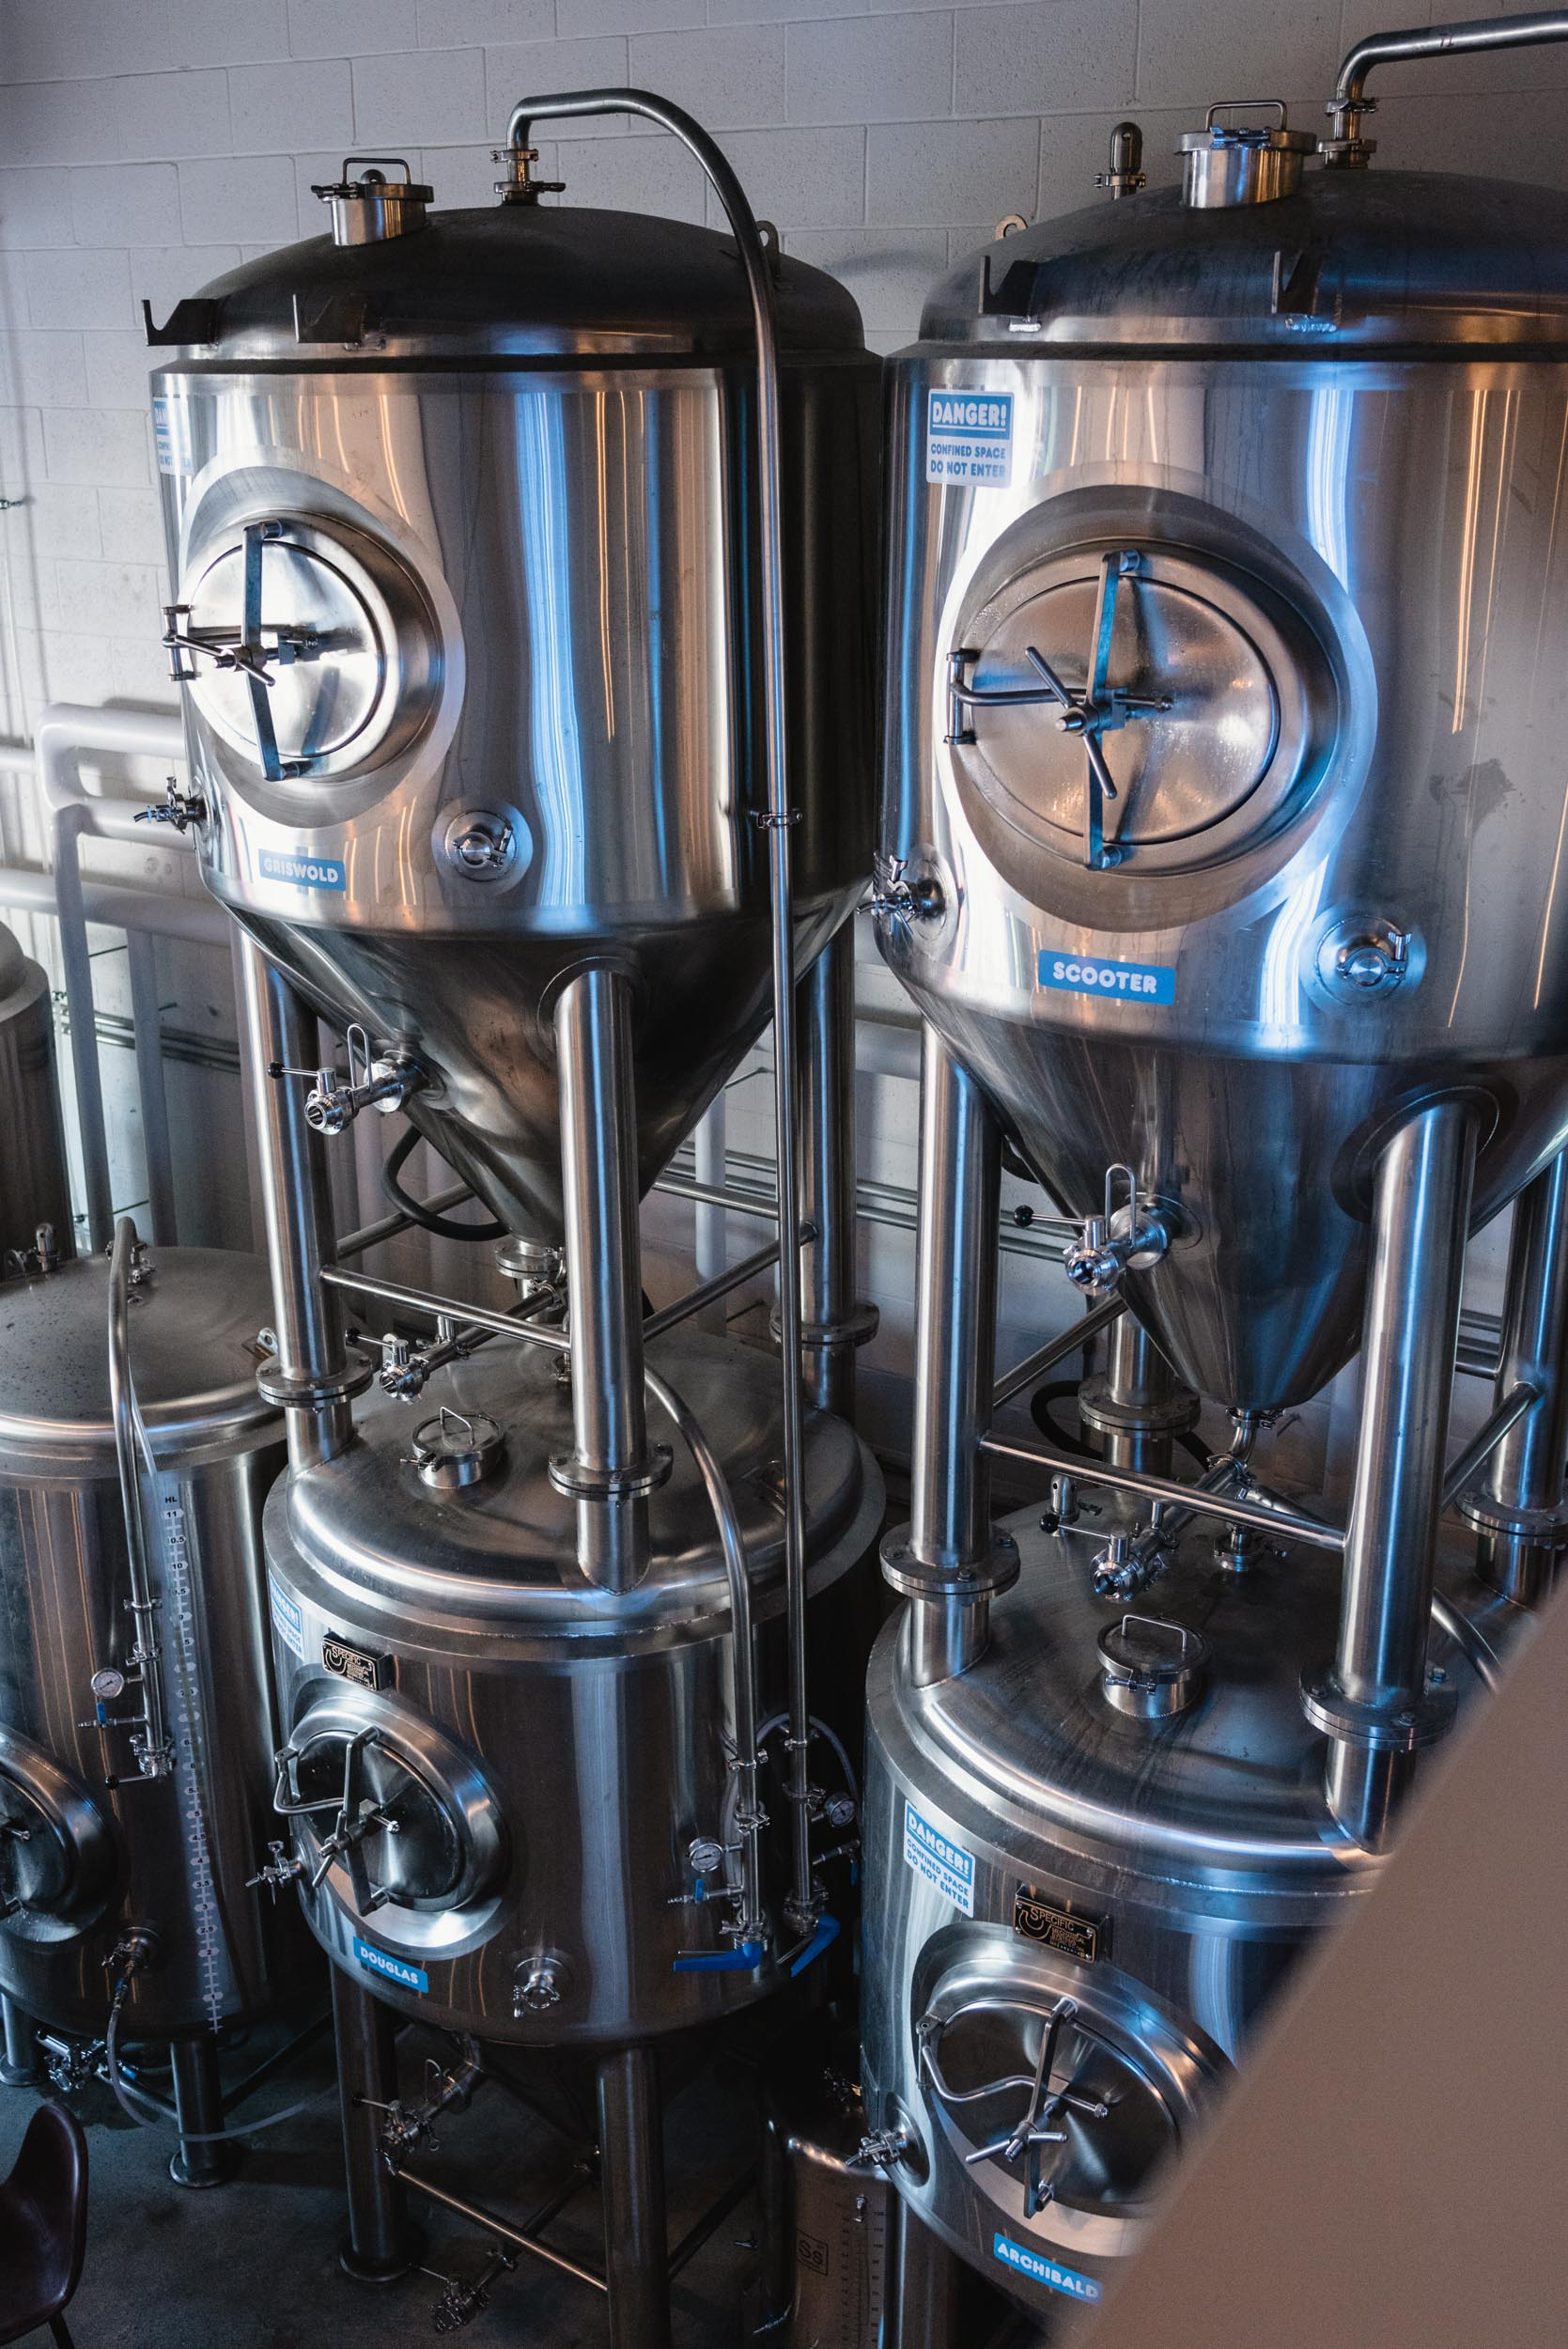 Brewery equipment at Another Beer Company